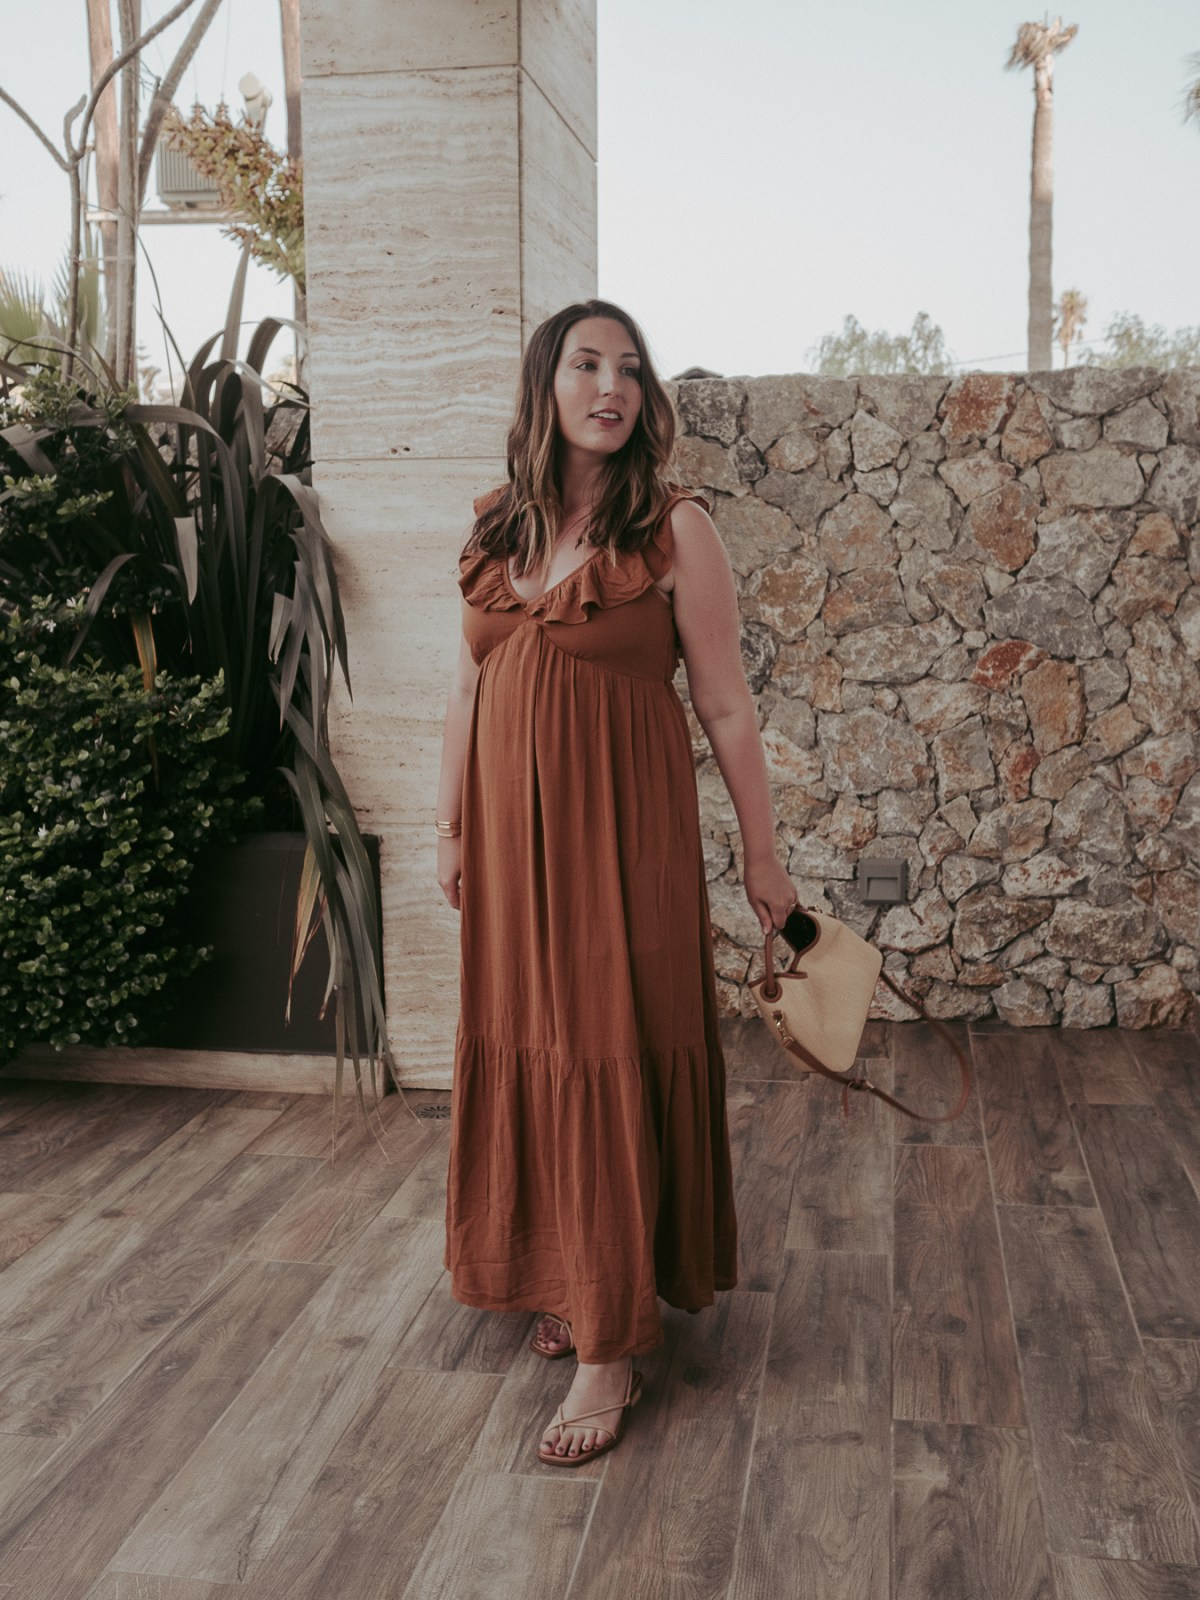 My Pregnancy Capsule Wardrobe   featuring Warehouse golden floaty maxi dress, Elleme straw and leather bag   summer outfit in Greece   W&S